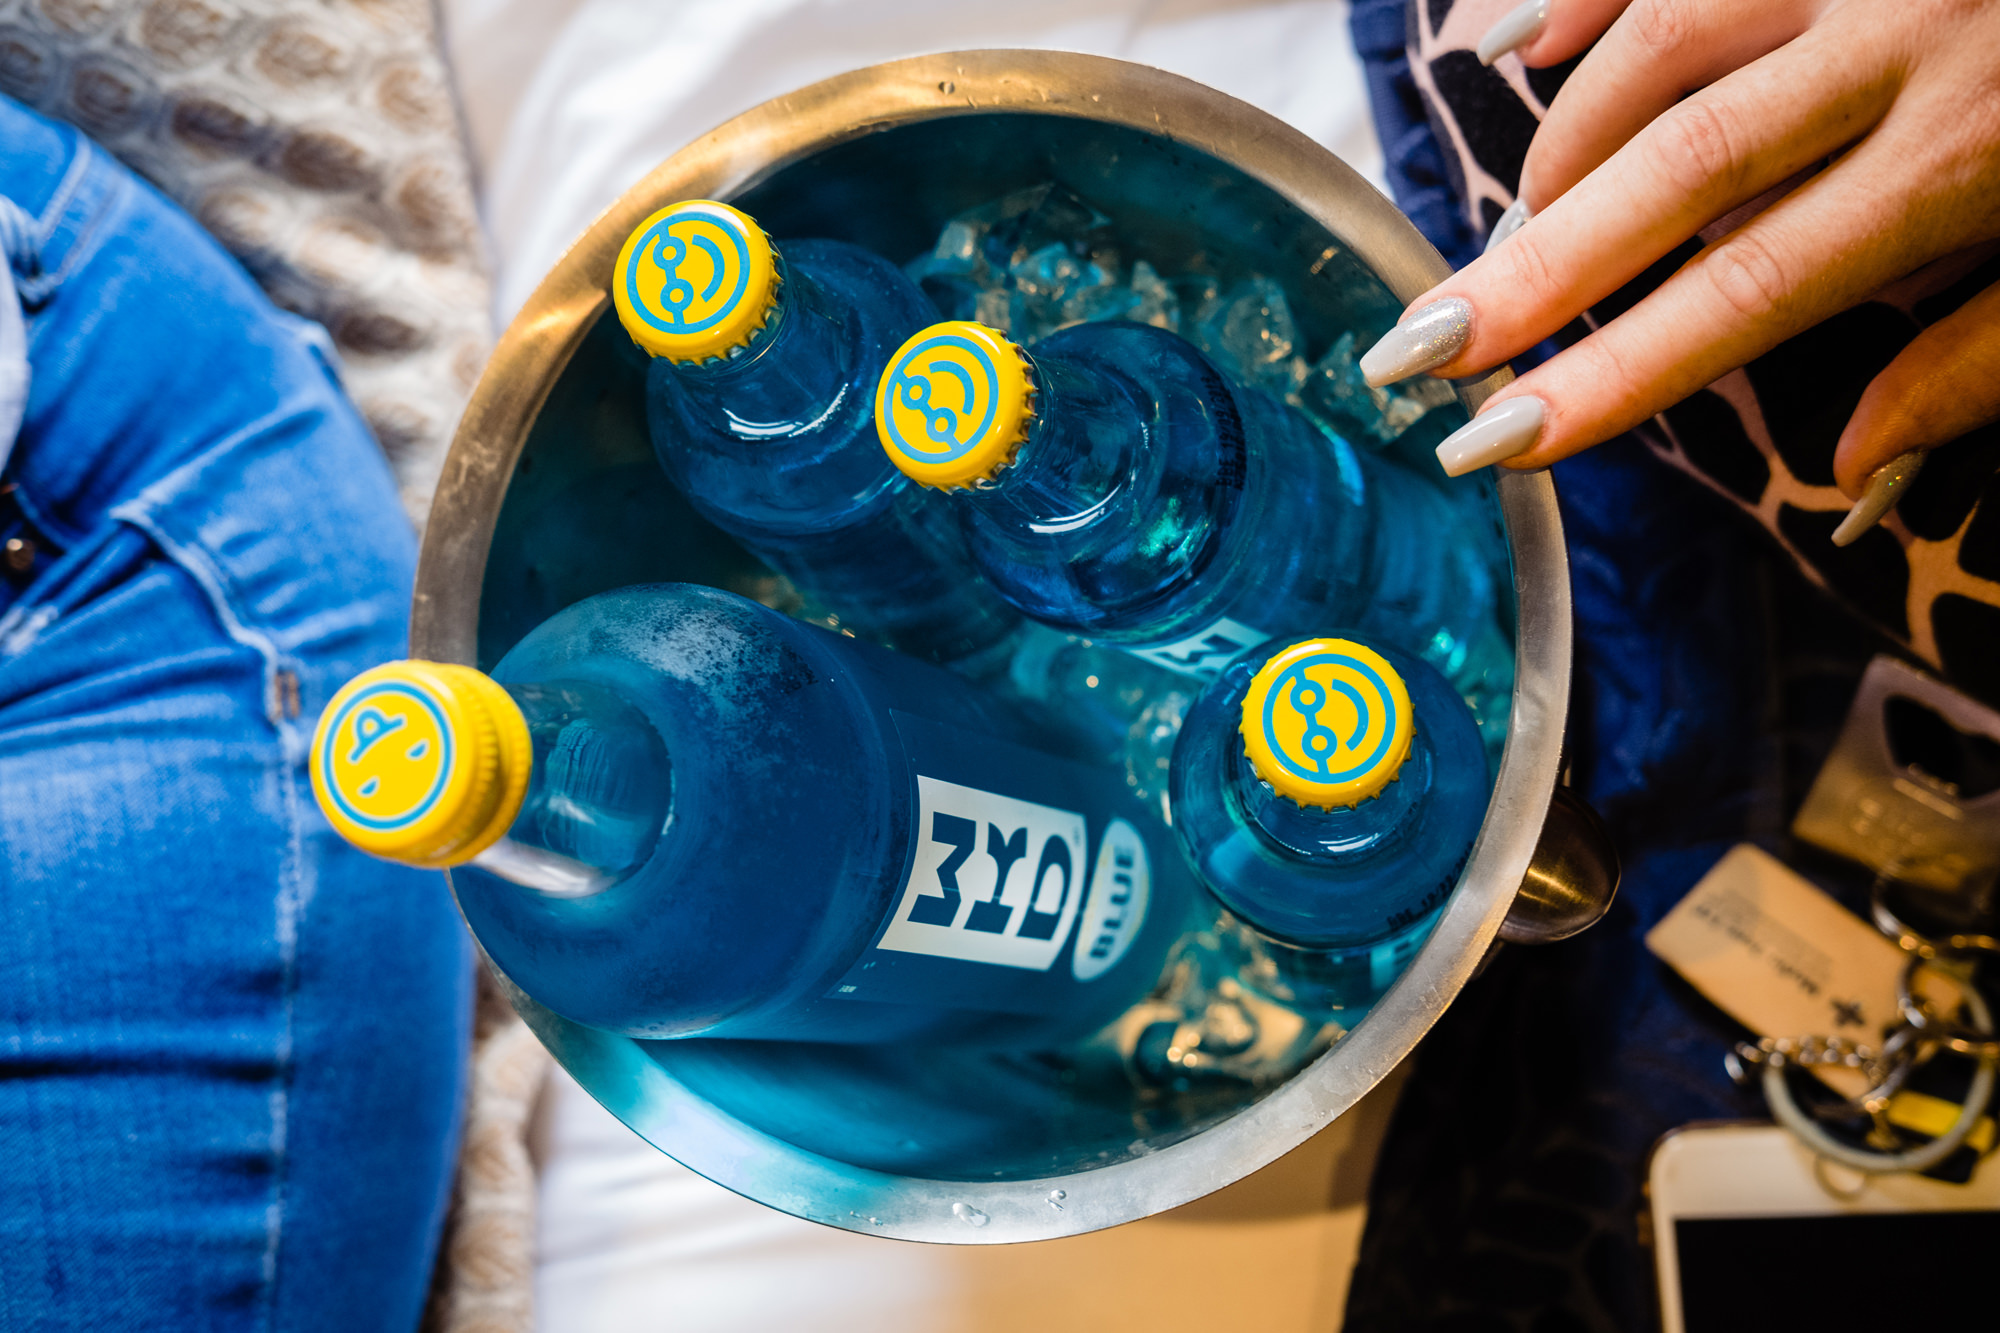 bottles of blue wkd in a wine cooler.